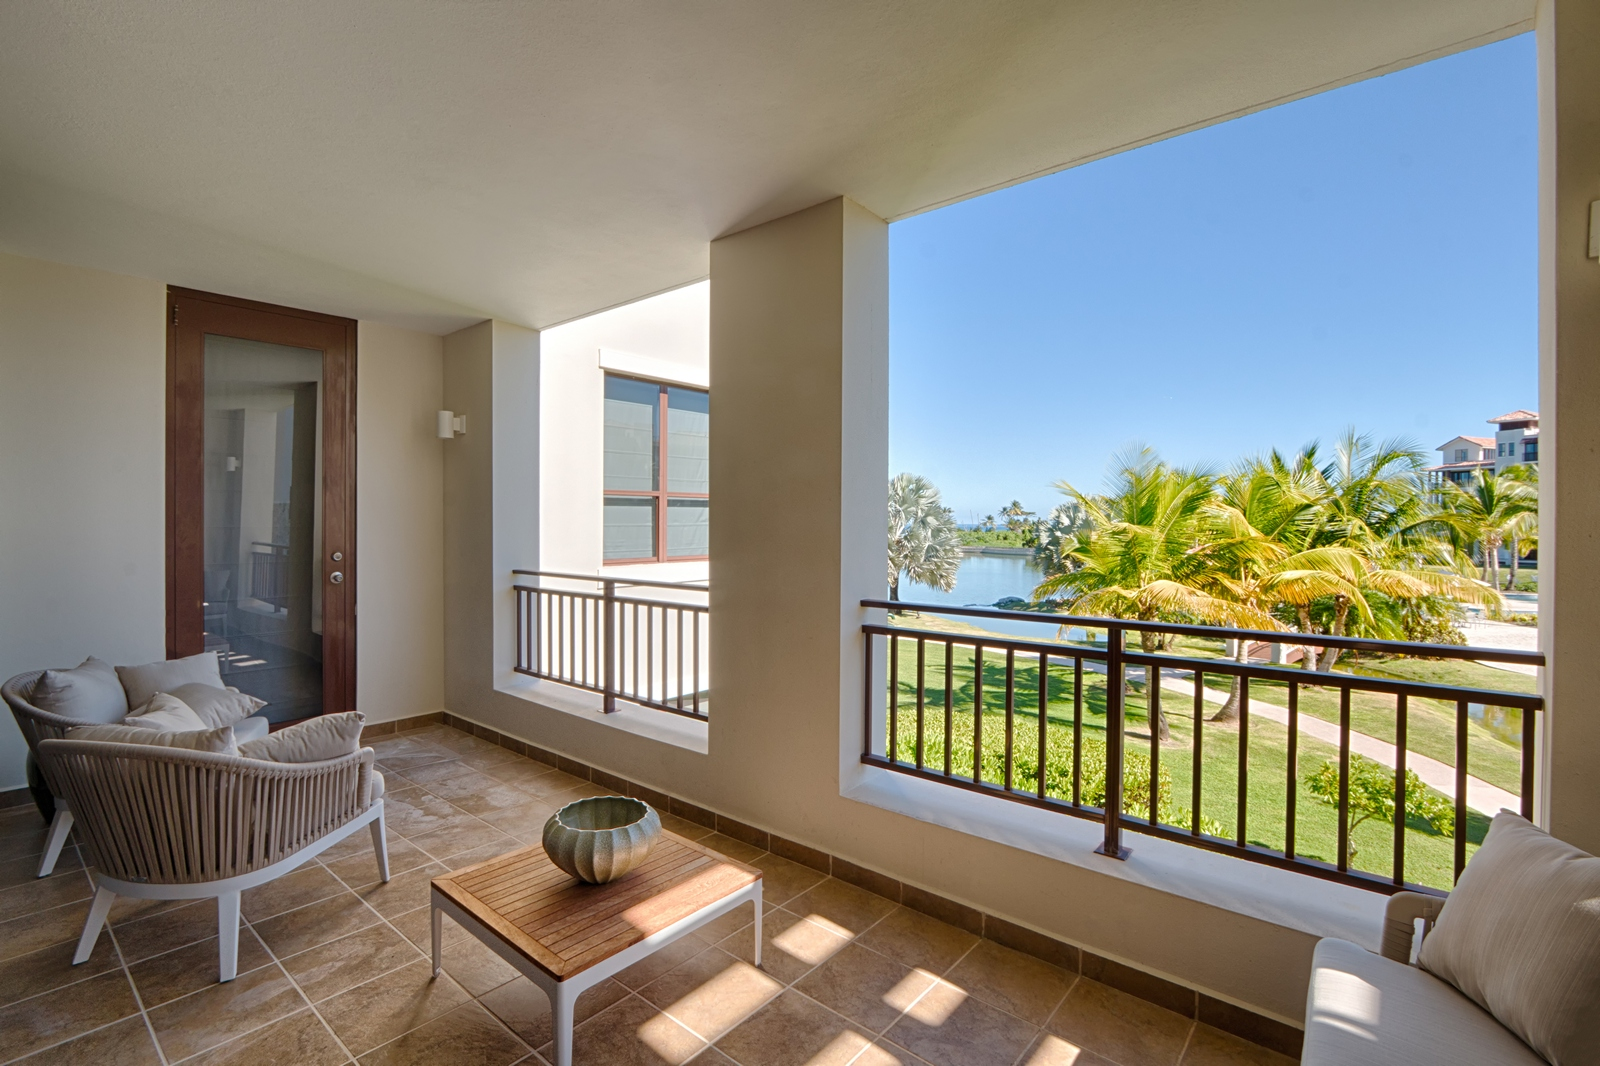 Кондоминиум для того Продажа на Residence 123 at 238 Candelero Drive 238 Candelero Drive, Apt 123 Solarea Beach Resort and Yacht Club Palmas Del Mar, Puerto Rico 00791 Пуэрто-Рико